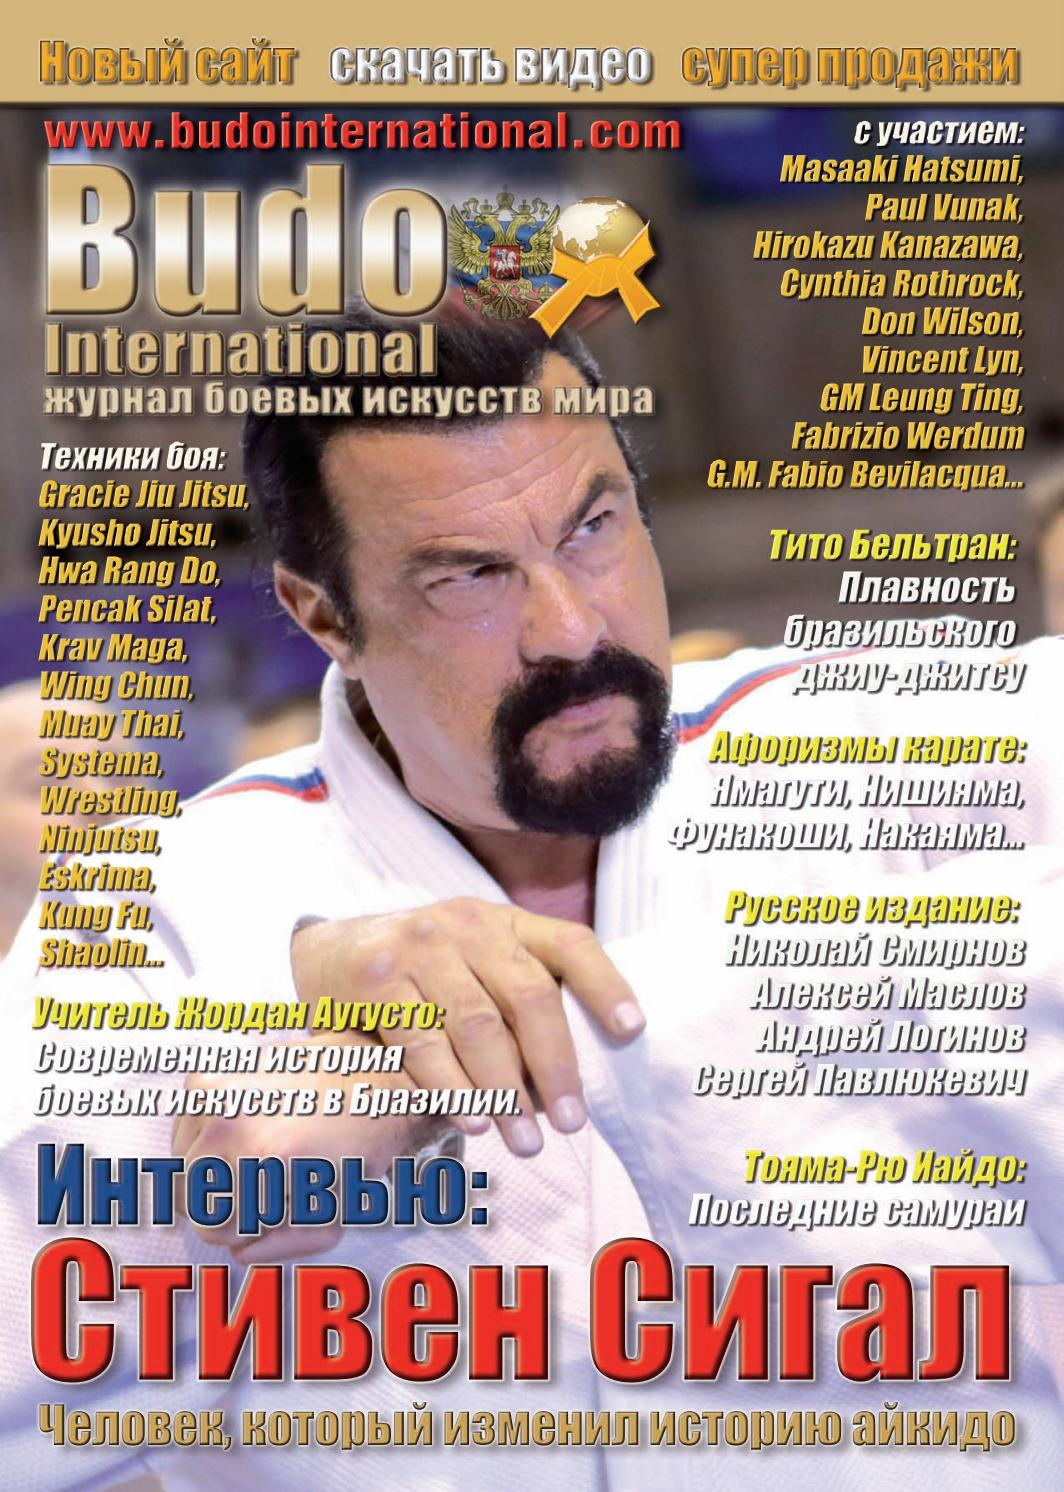 Budo International #1